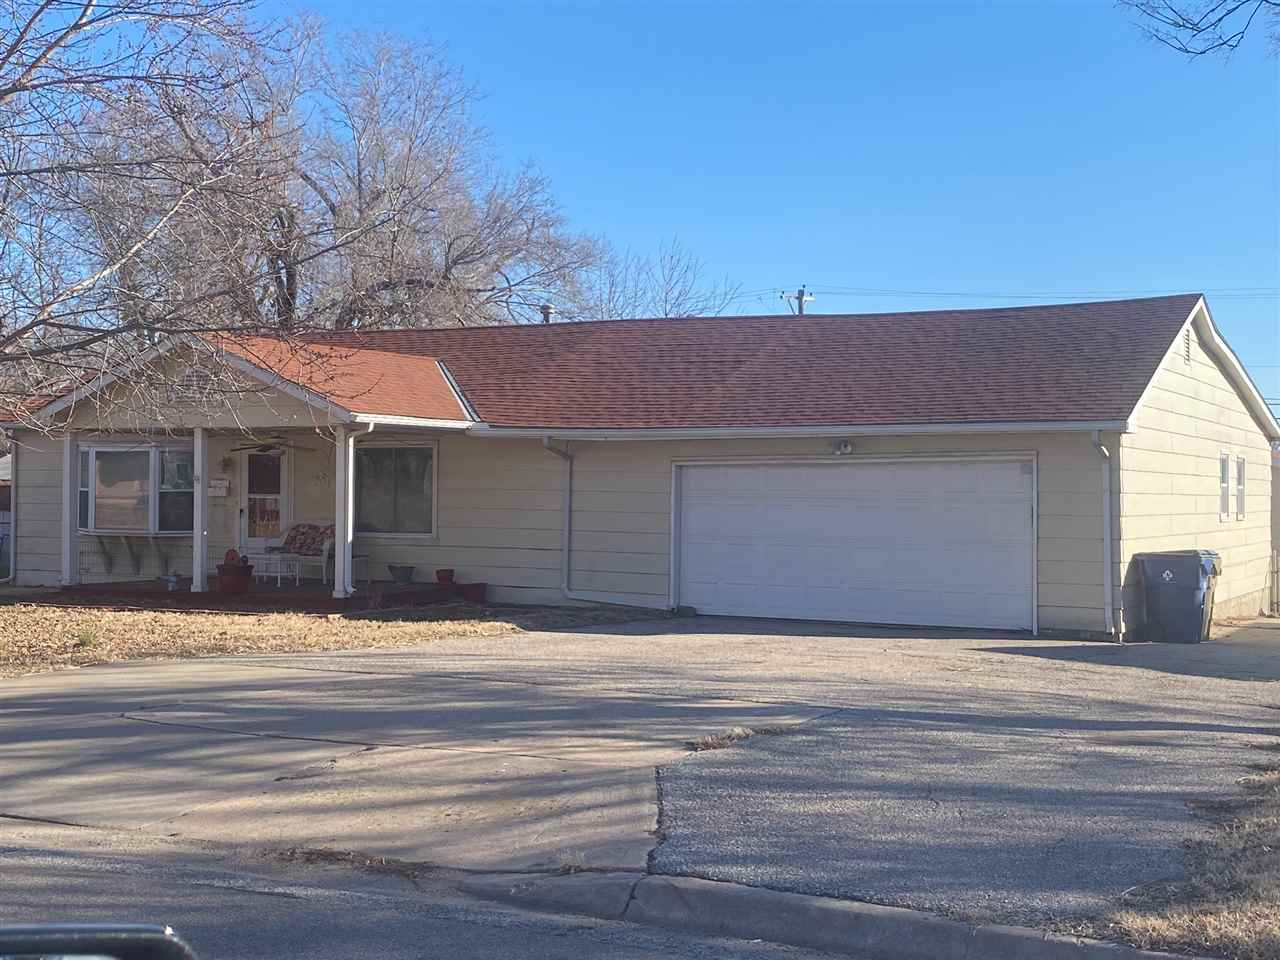 120 S Kokomo Ave, Derby, KS, 67037